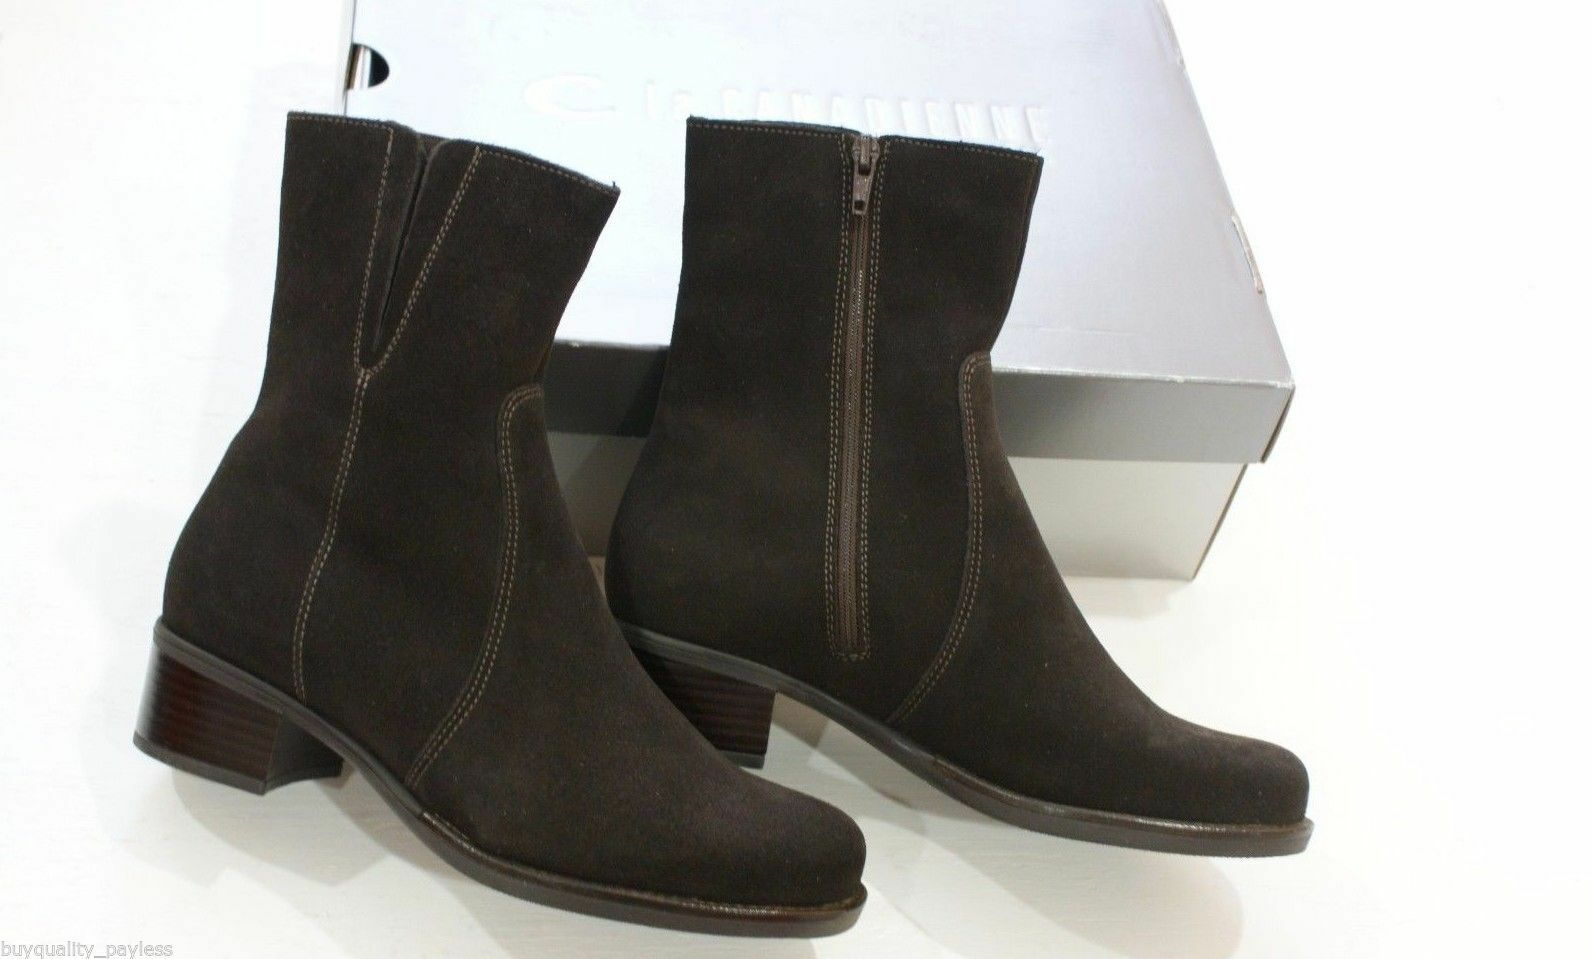 LA CANADIENNE Perla Brown Suede WATERPROOF Ankle Stivali Donna 6 EXPEDITED MAIL